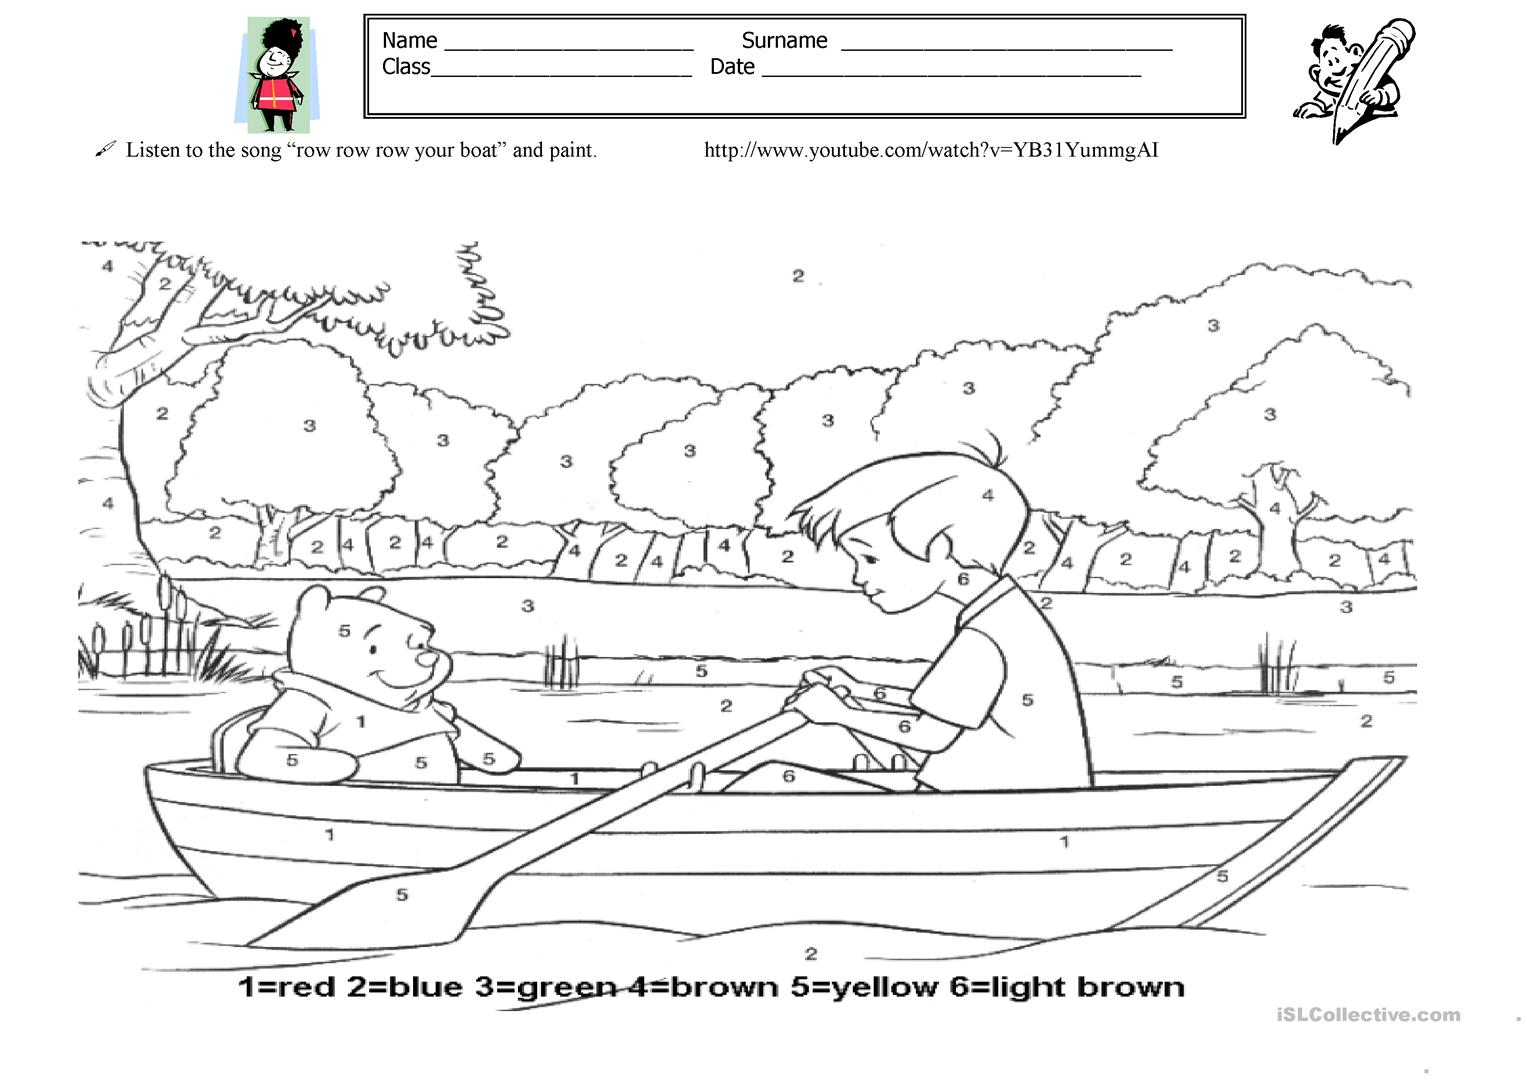 Piant Row Your Boat Worksheet